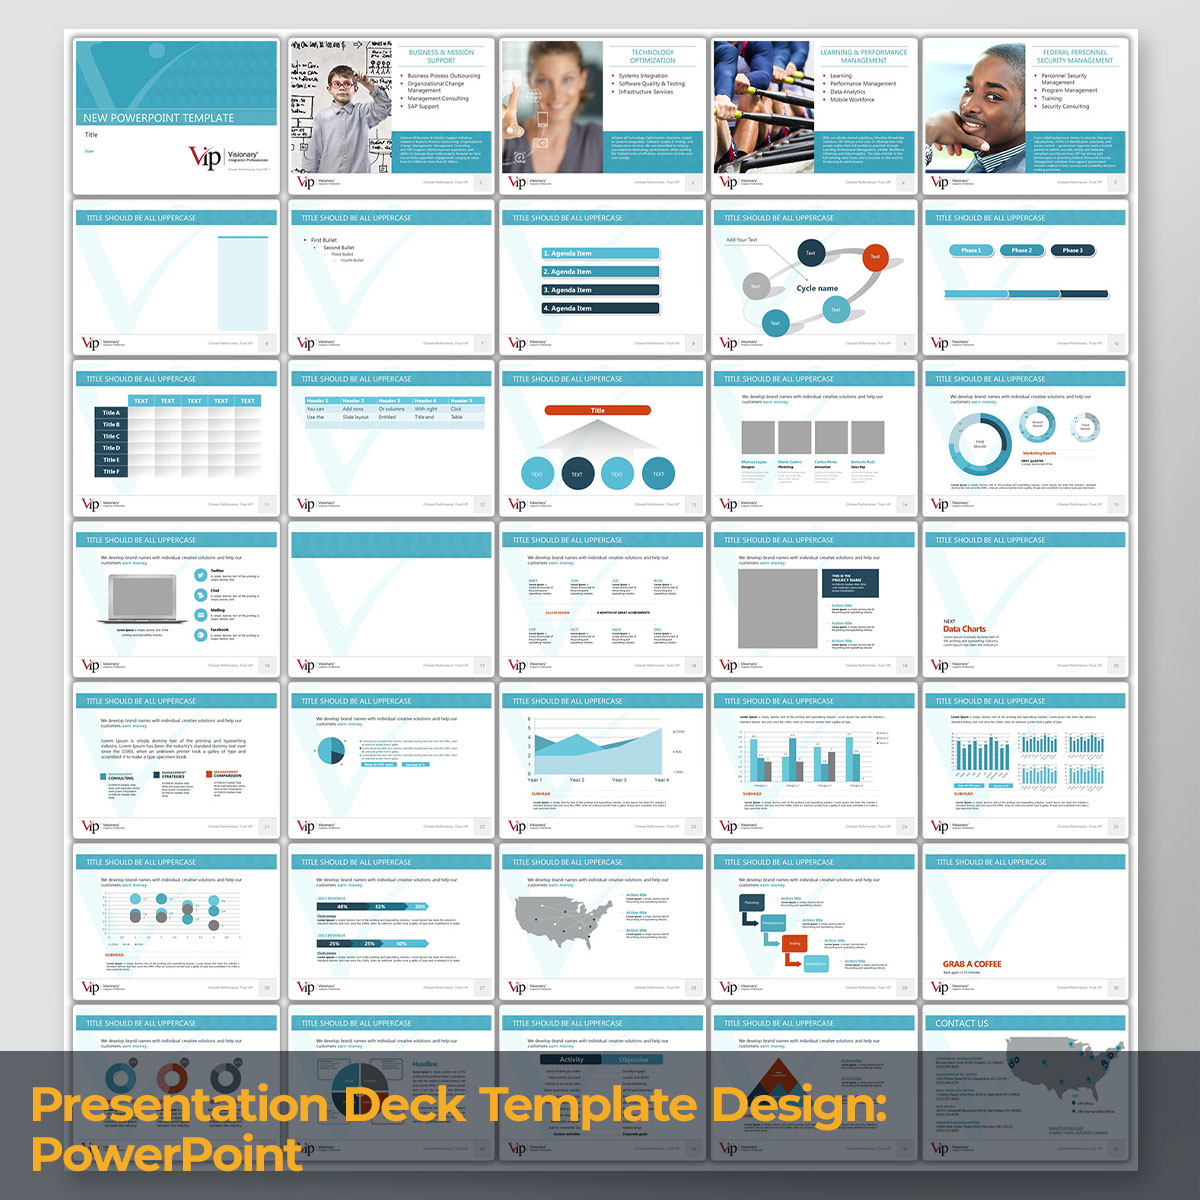 Presentation Deck Template Design